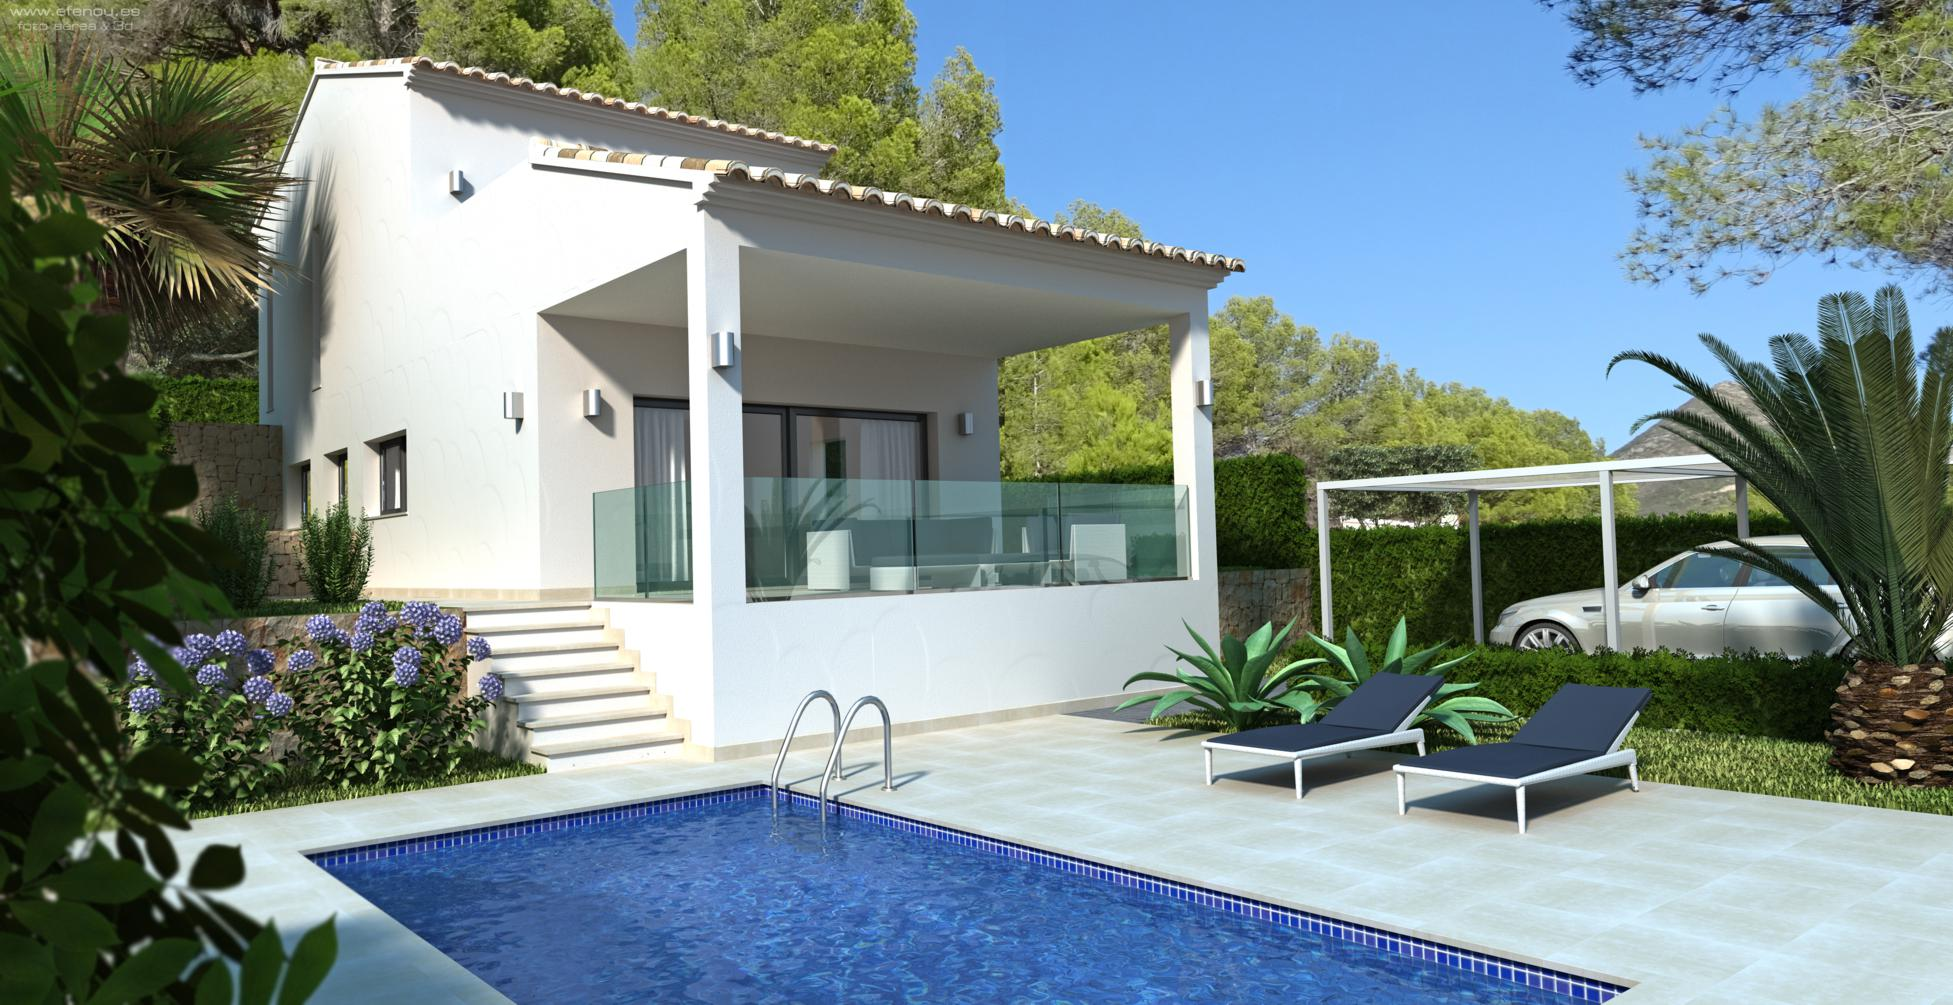 2 Bedroom Villa in Jalon